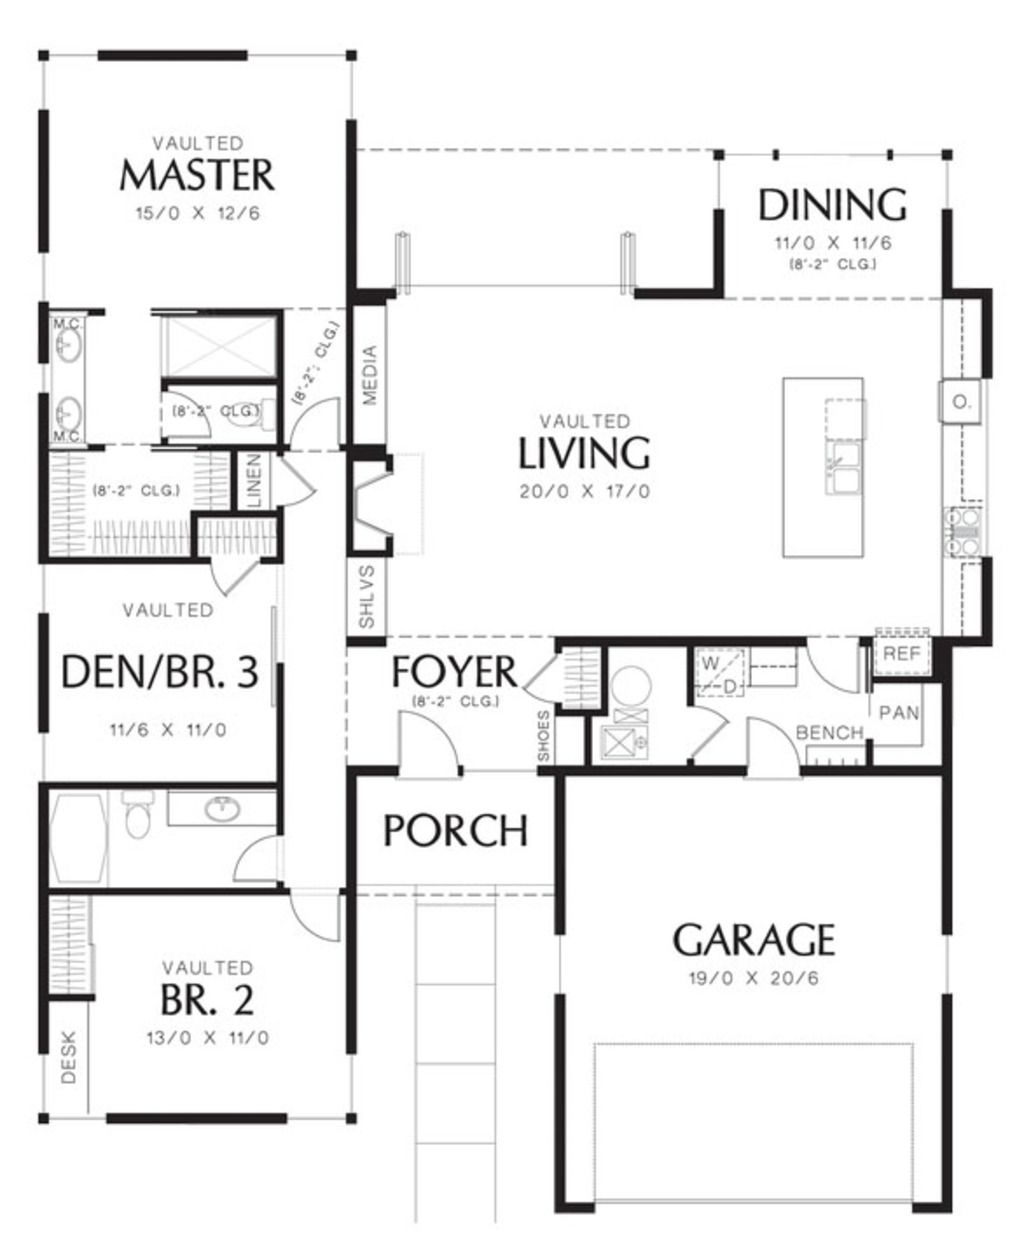 1000+ images about houseplans on Pinterest - ^